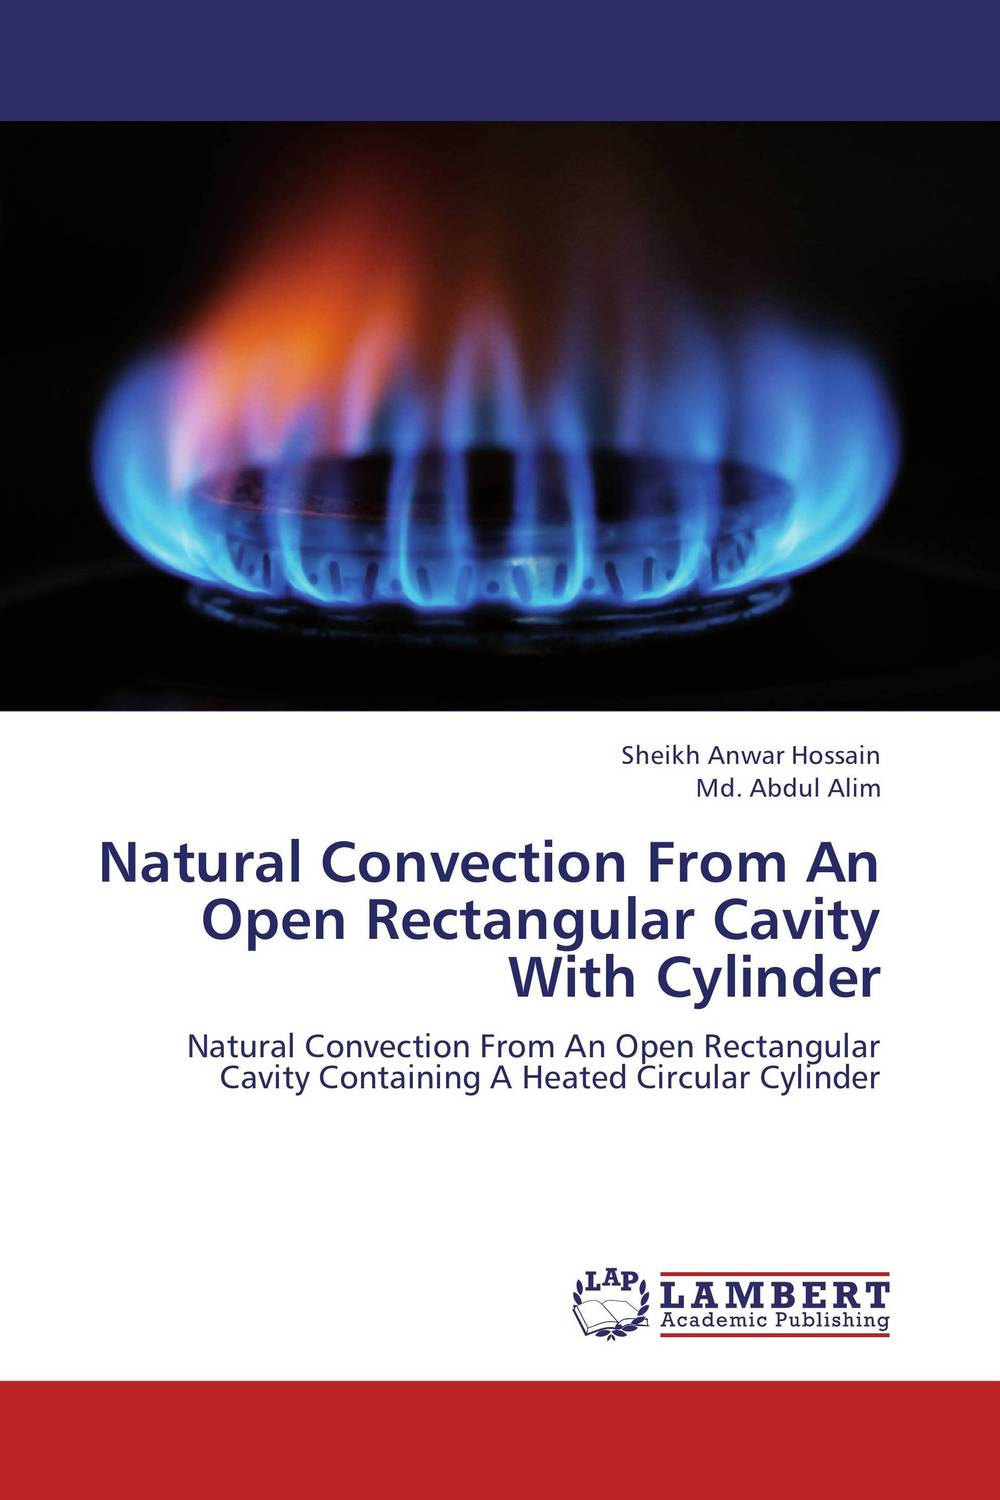 Natural Convection From An Open Rectangular Cavity With Cylinder particle mixing and settling in reservoirs under natural convection